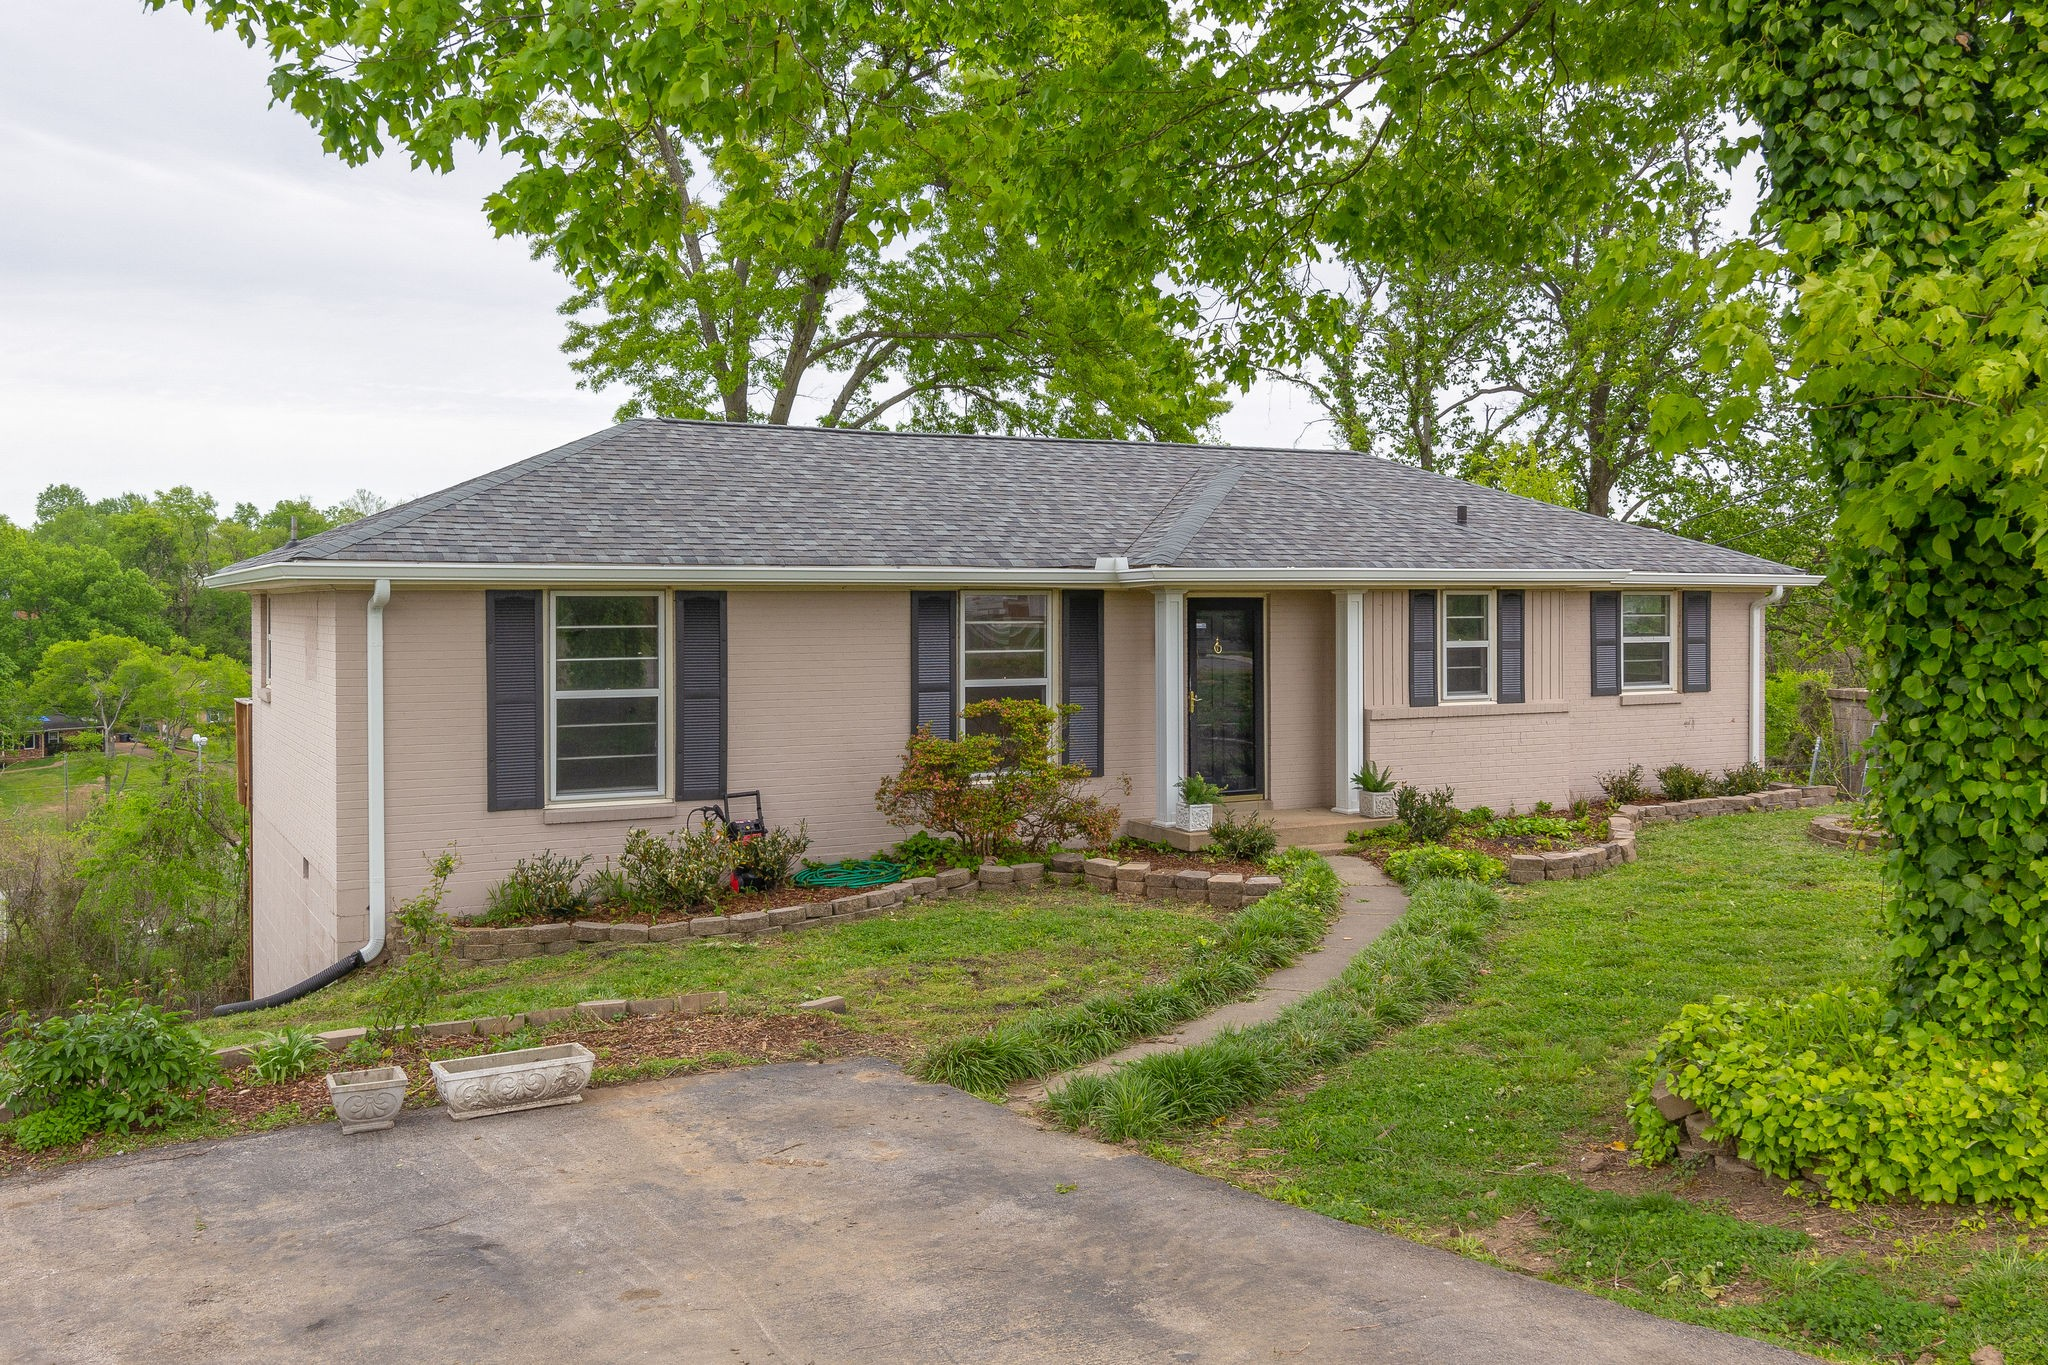 Donelson Meadows Homes For Sale